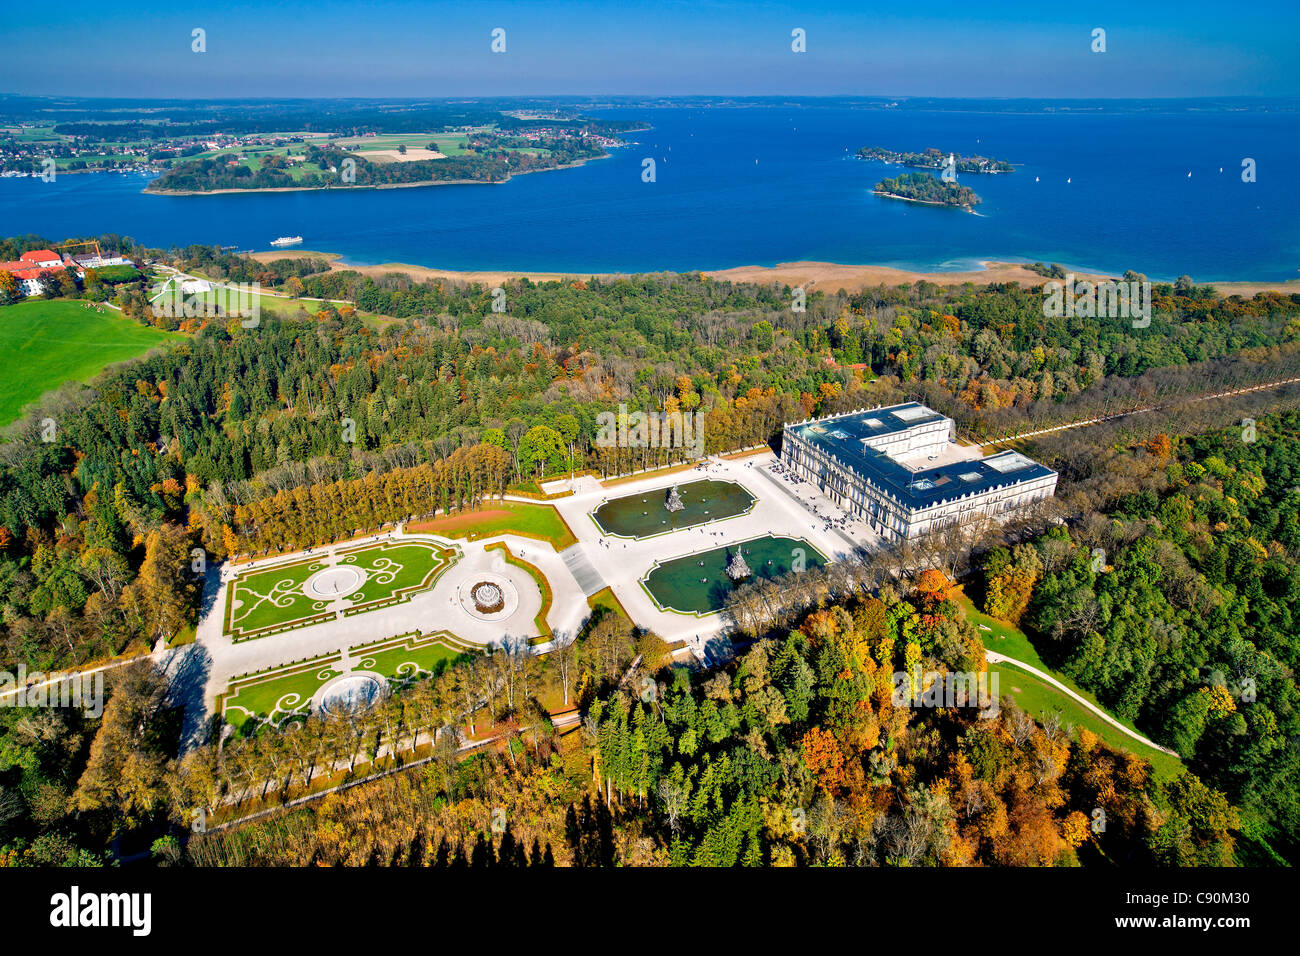 Aerial view of the Herrenchiemsee Castle, Herrenchiemsee, Chiemsee, Chiemgau, Upper Bavaria, Bavaria, Germany - Stock Image